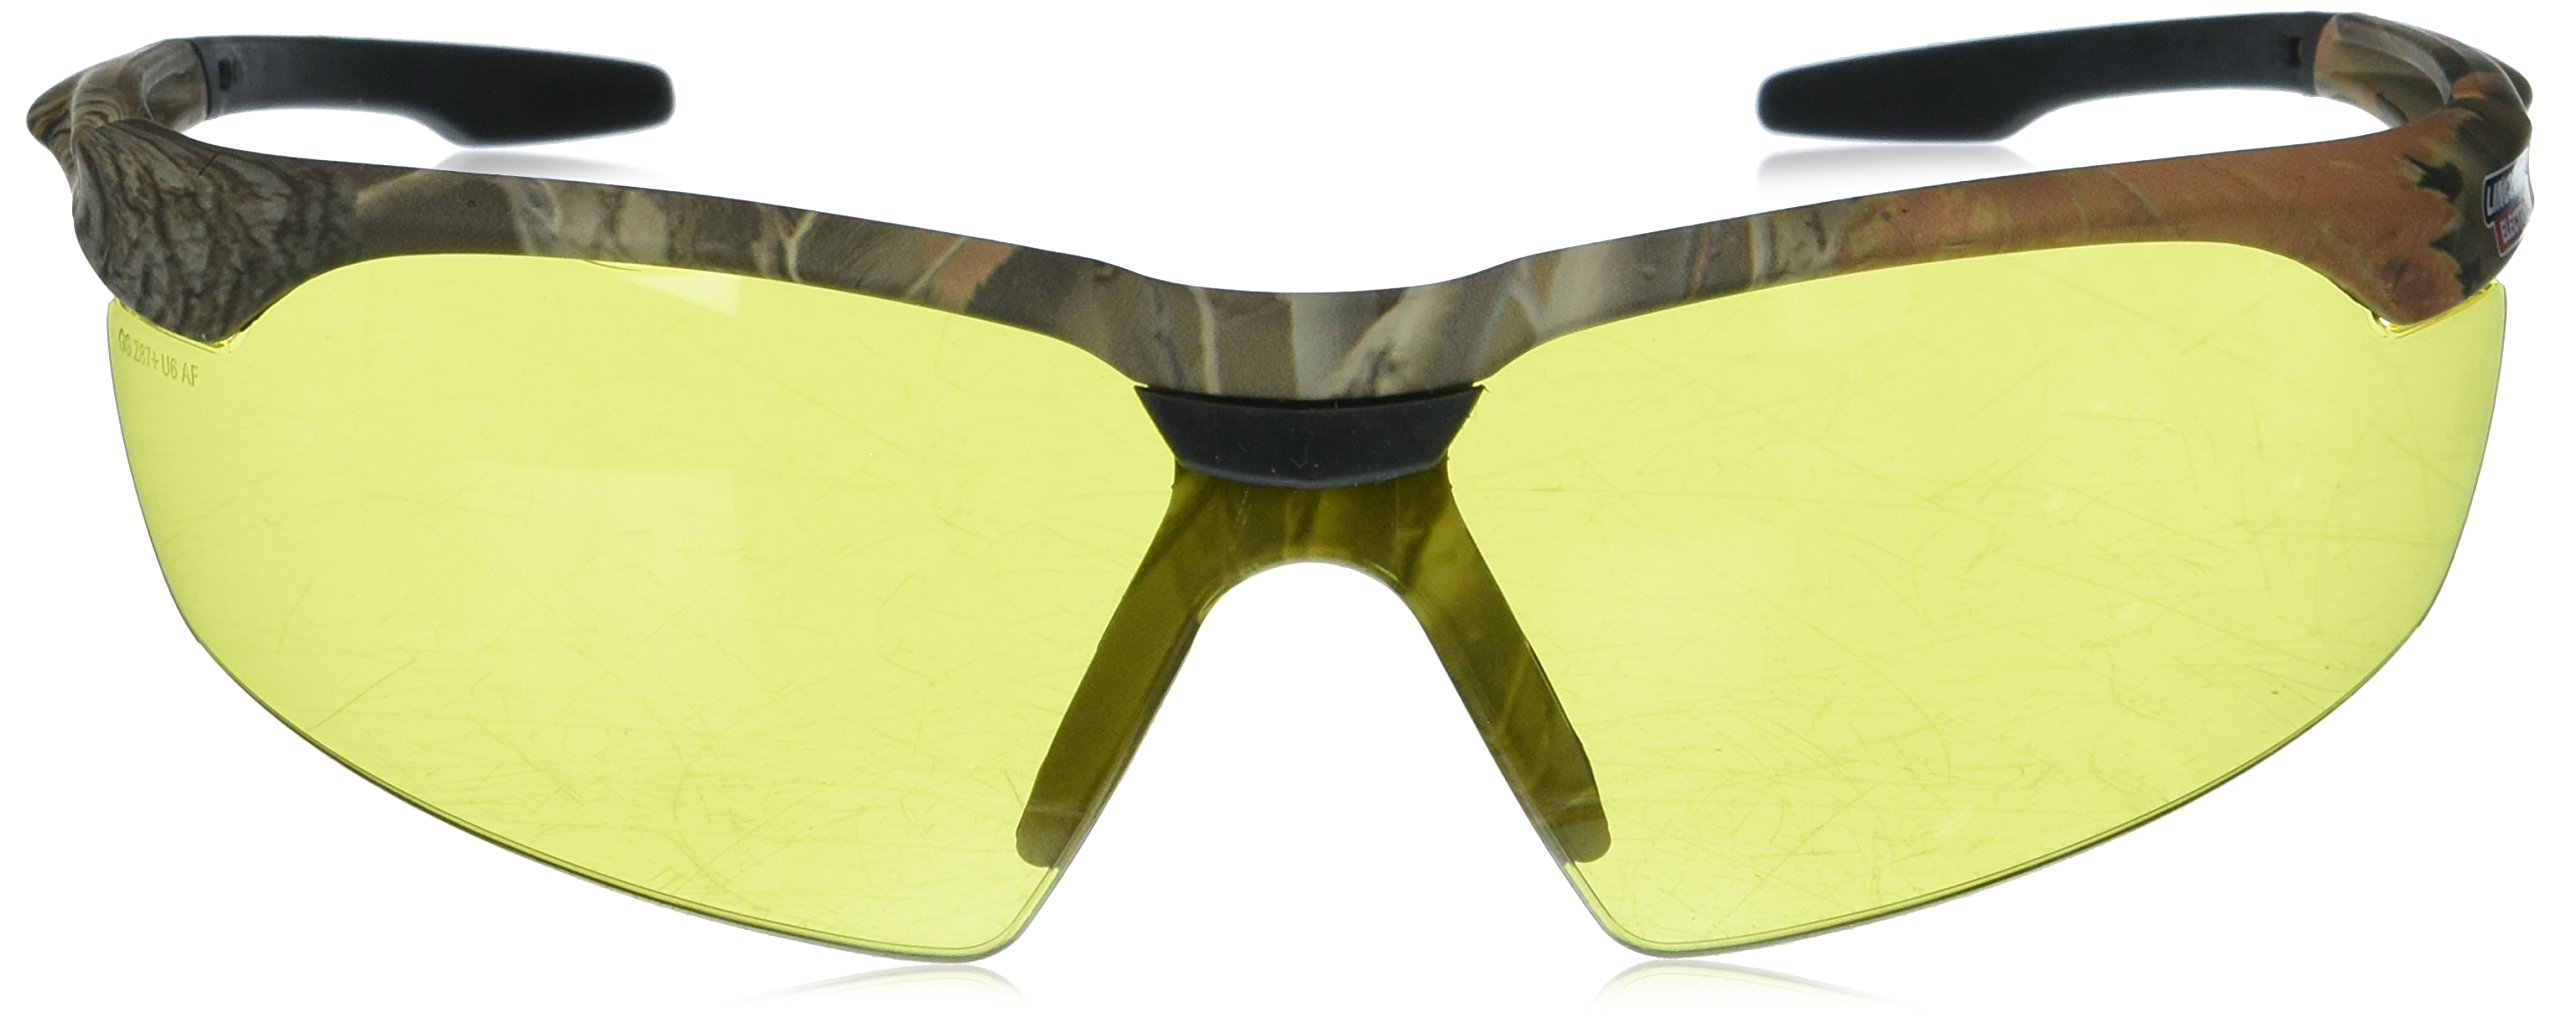 LINCOLN ELECTRIC CO KH9710 Yellow Camo Safety Glasses with Amber Lenses, by Lincoln Electric (Image #2)